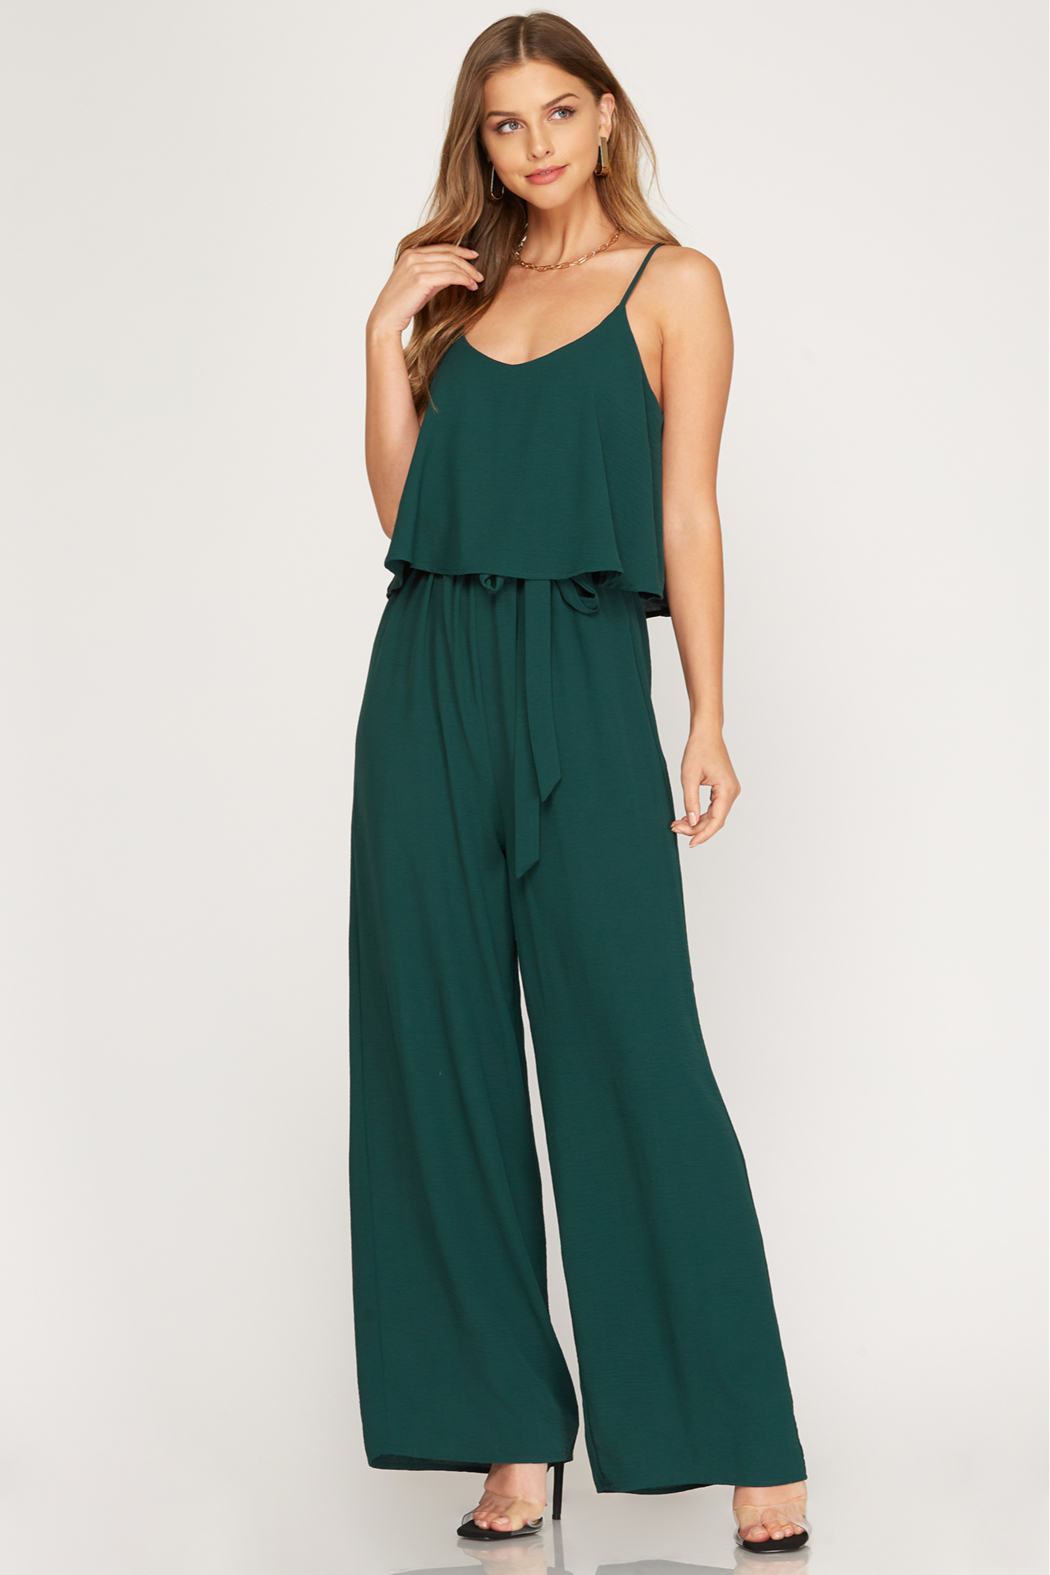 She and Sky Woven Cami Ruffled Overlay Jumpsuit - Front Cropped Image